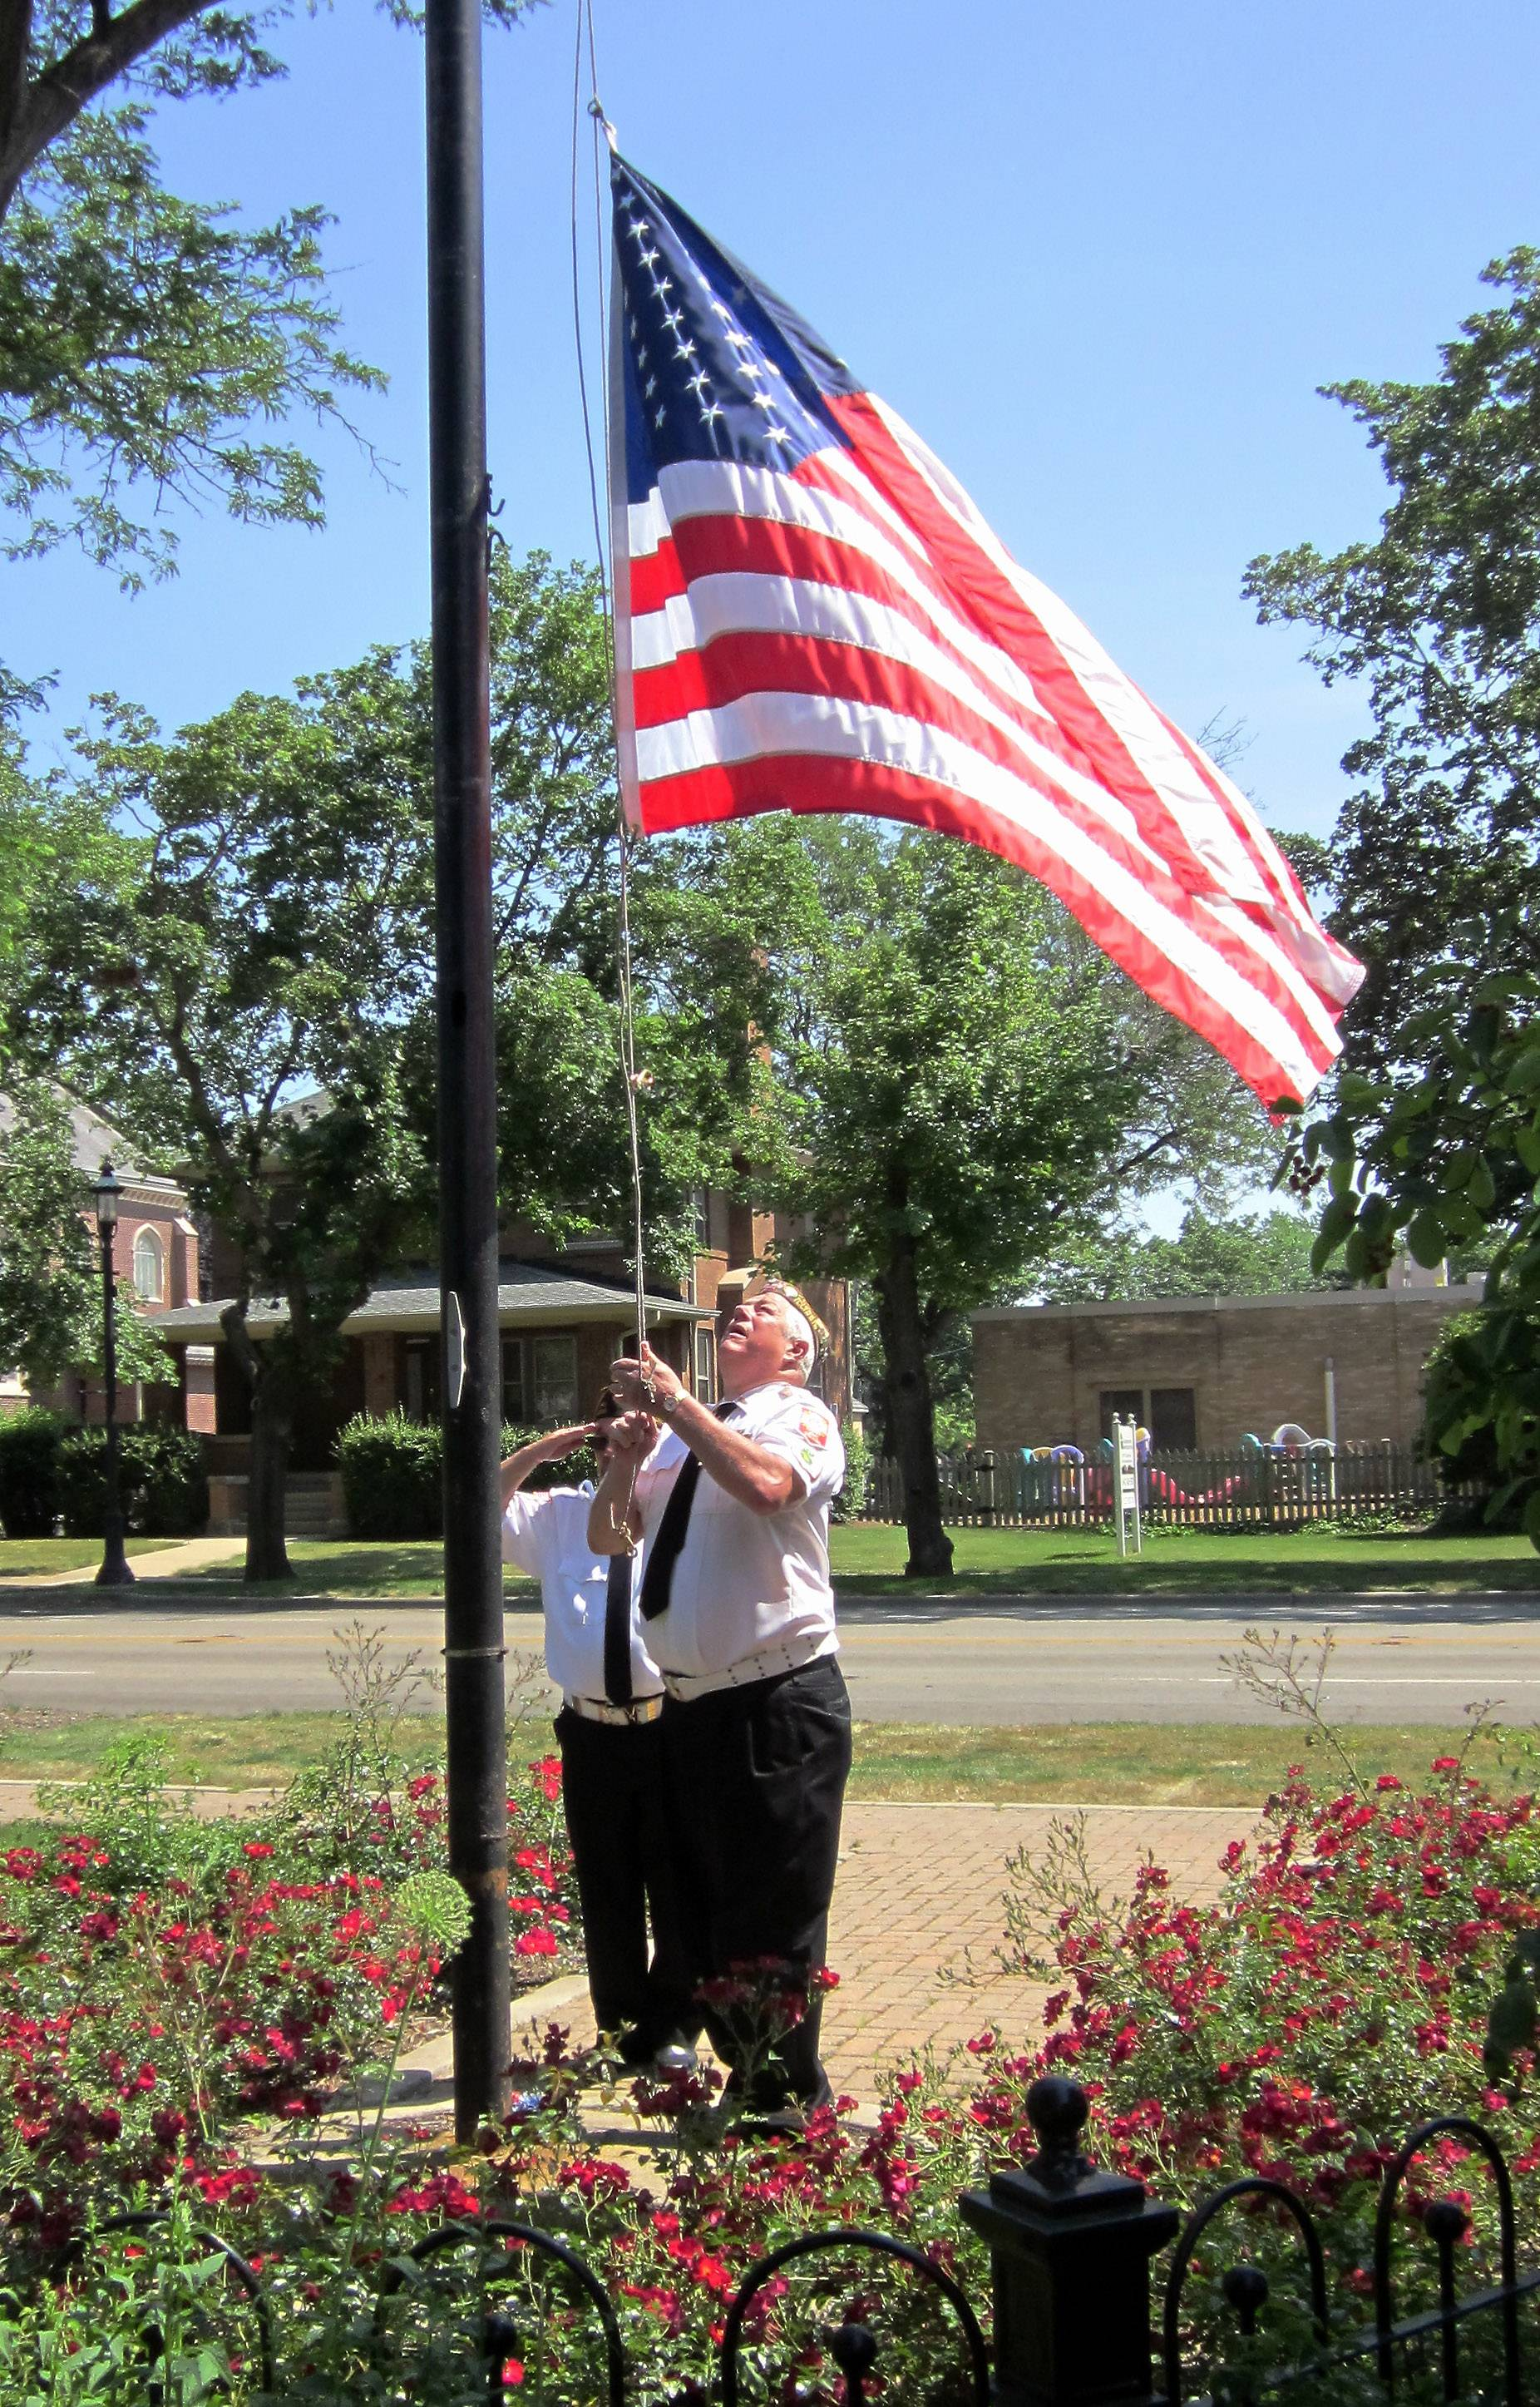 Larry Fettes, of VFW Post 2298, brings the flag down to half staff for a Memorial Day ceremony in Grafelman Park in West Dundee. George Cochran salutes the flag behind him. Post 2298 organizes the annual Memorial Day parade and program, which starts in East Dundee and ends in West Dundee.